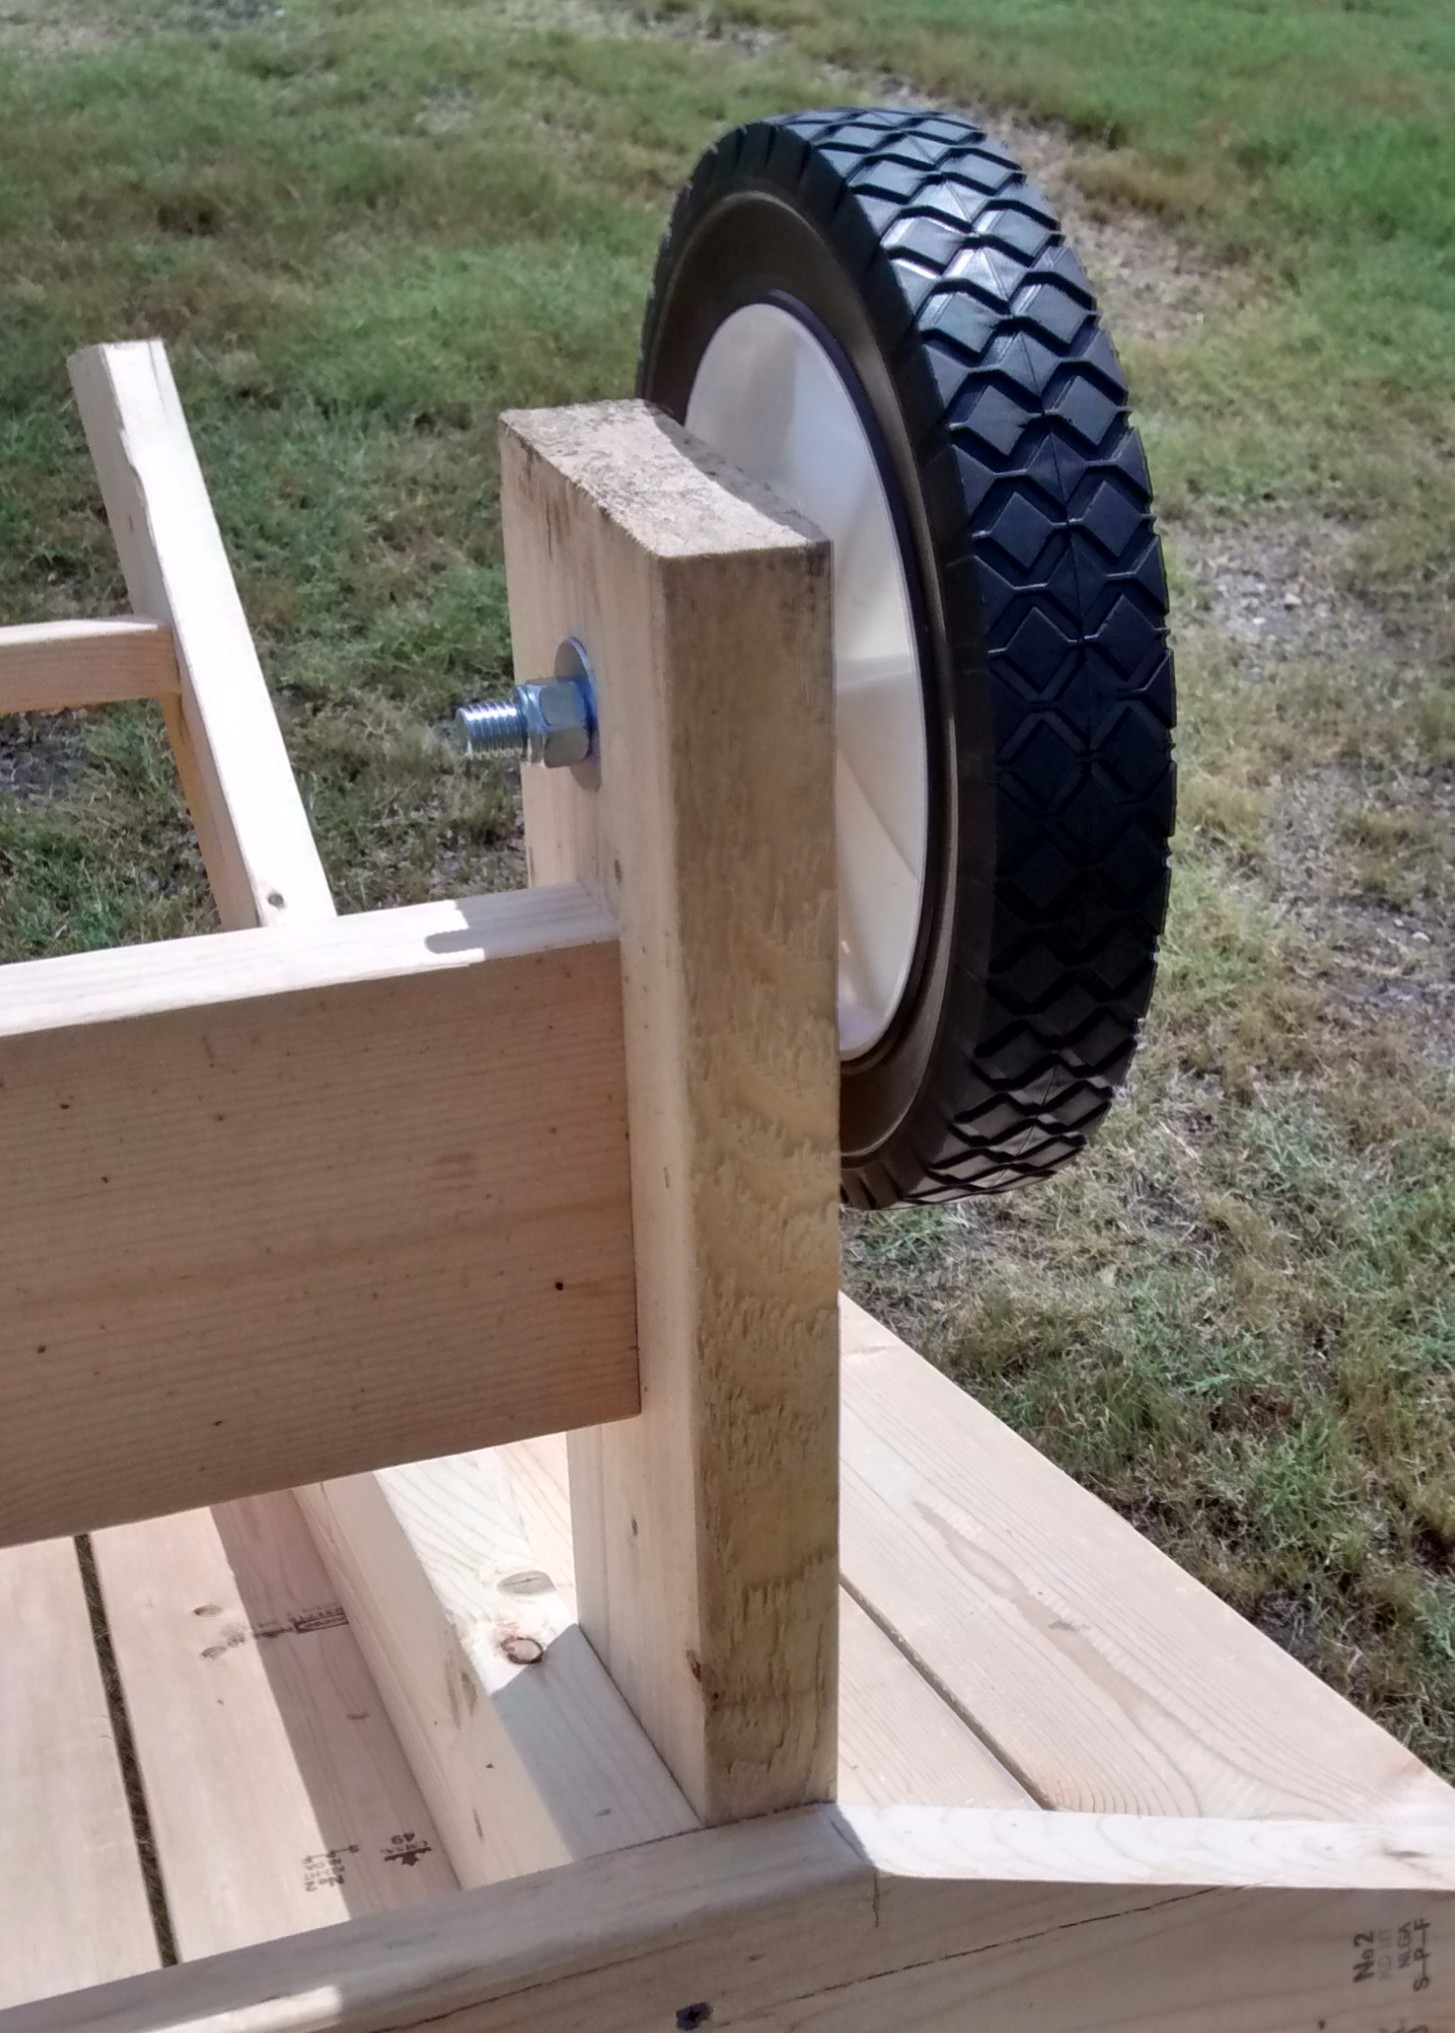 Click image for larger version  Name:Bench wheel attch.jpg Views:104 Size:508.2 KB ID:2106068